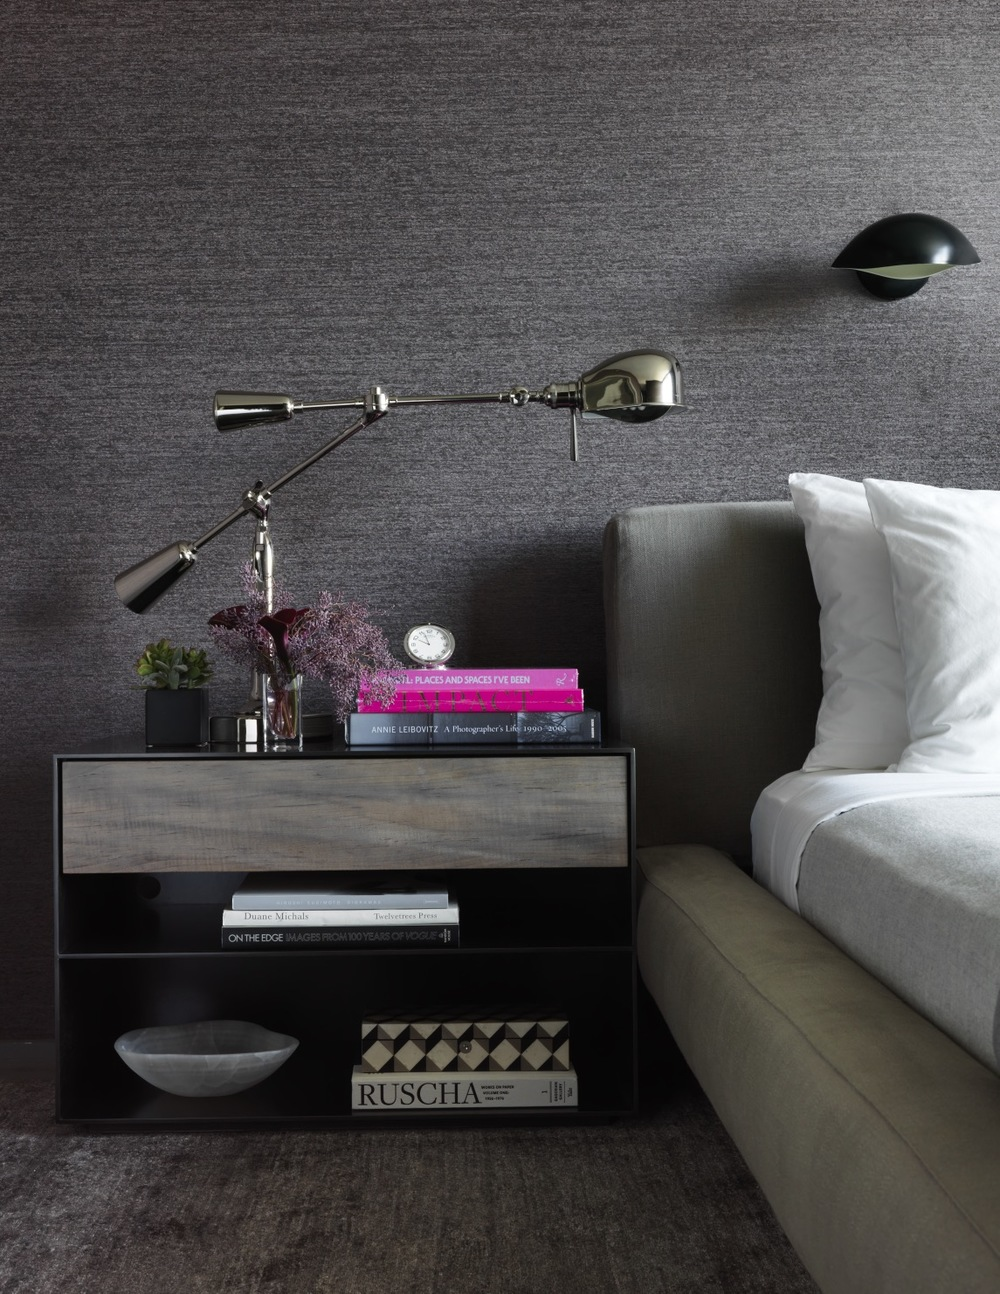 New York City Retreat - BEDROOM, Details - Chelsea, NYC - Schoeller + Darling Interior Design